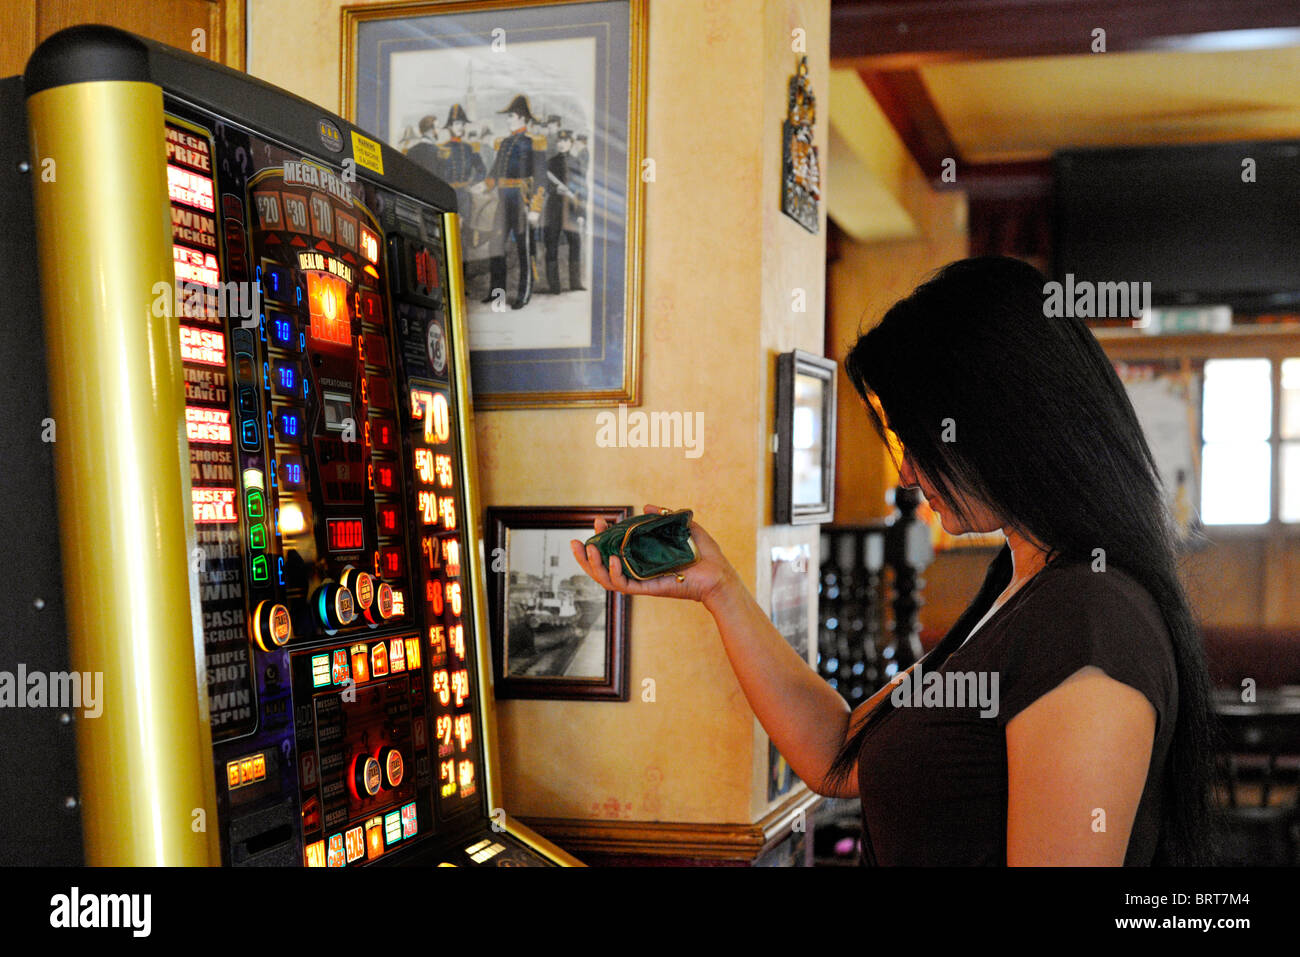 canada casino mobile for real money